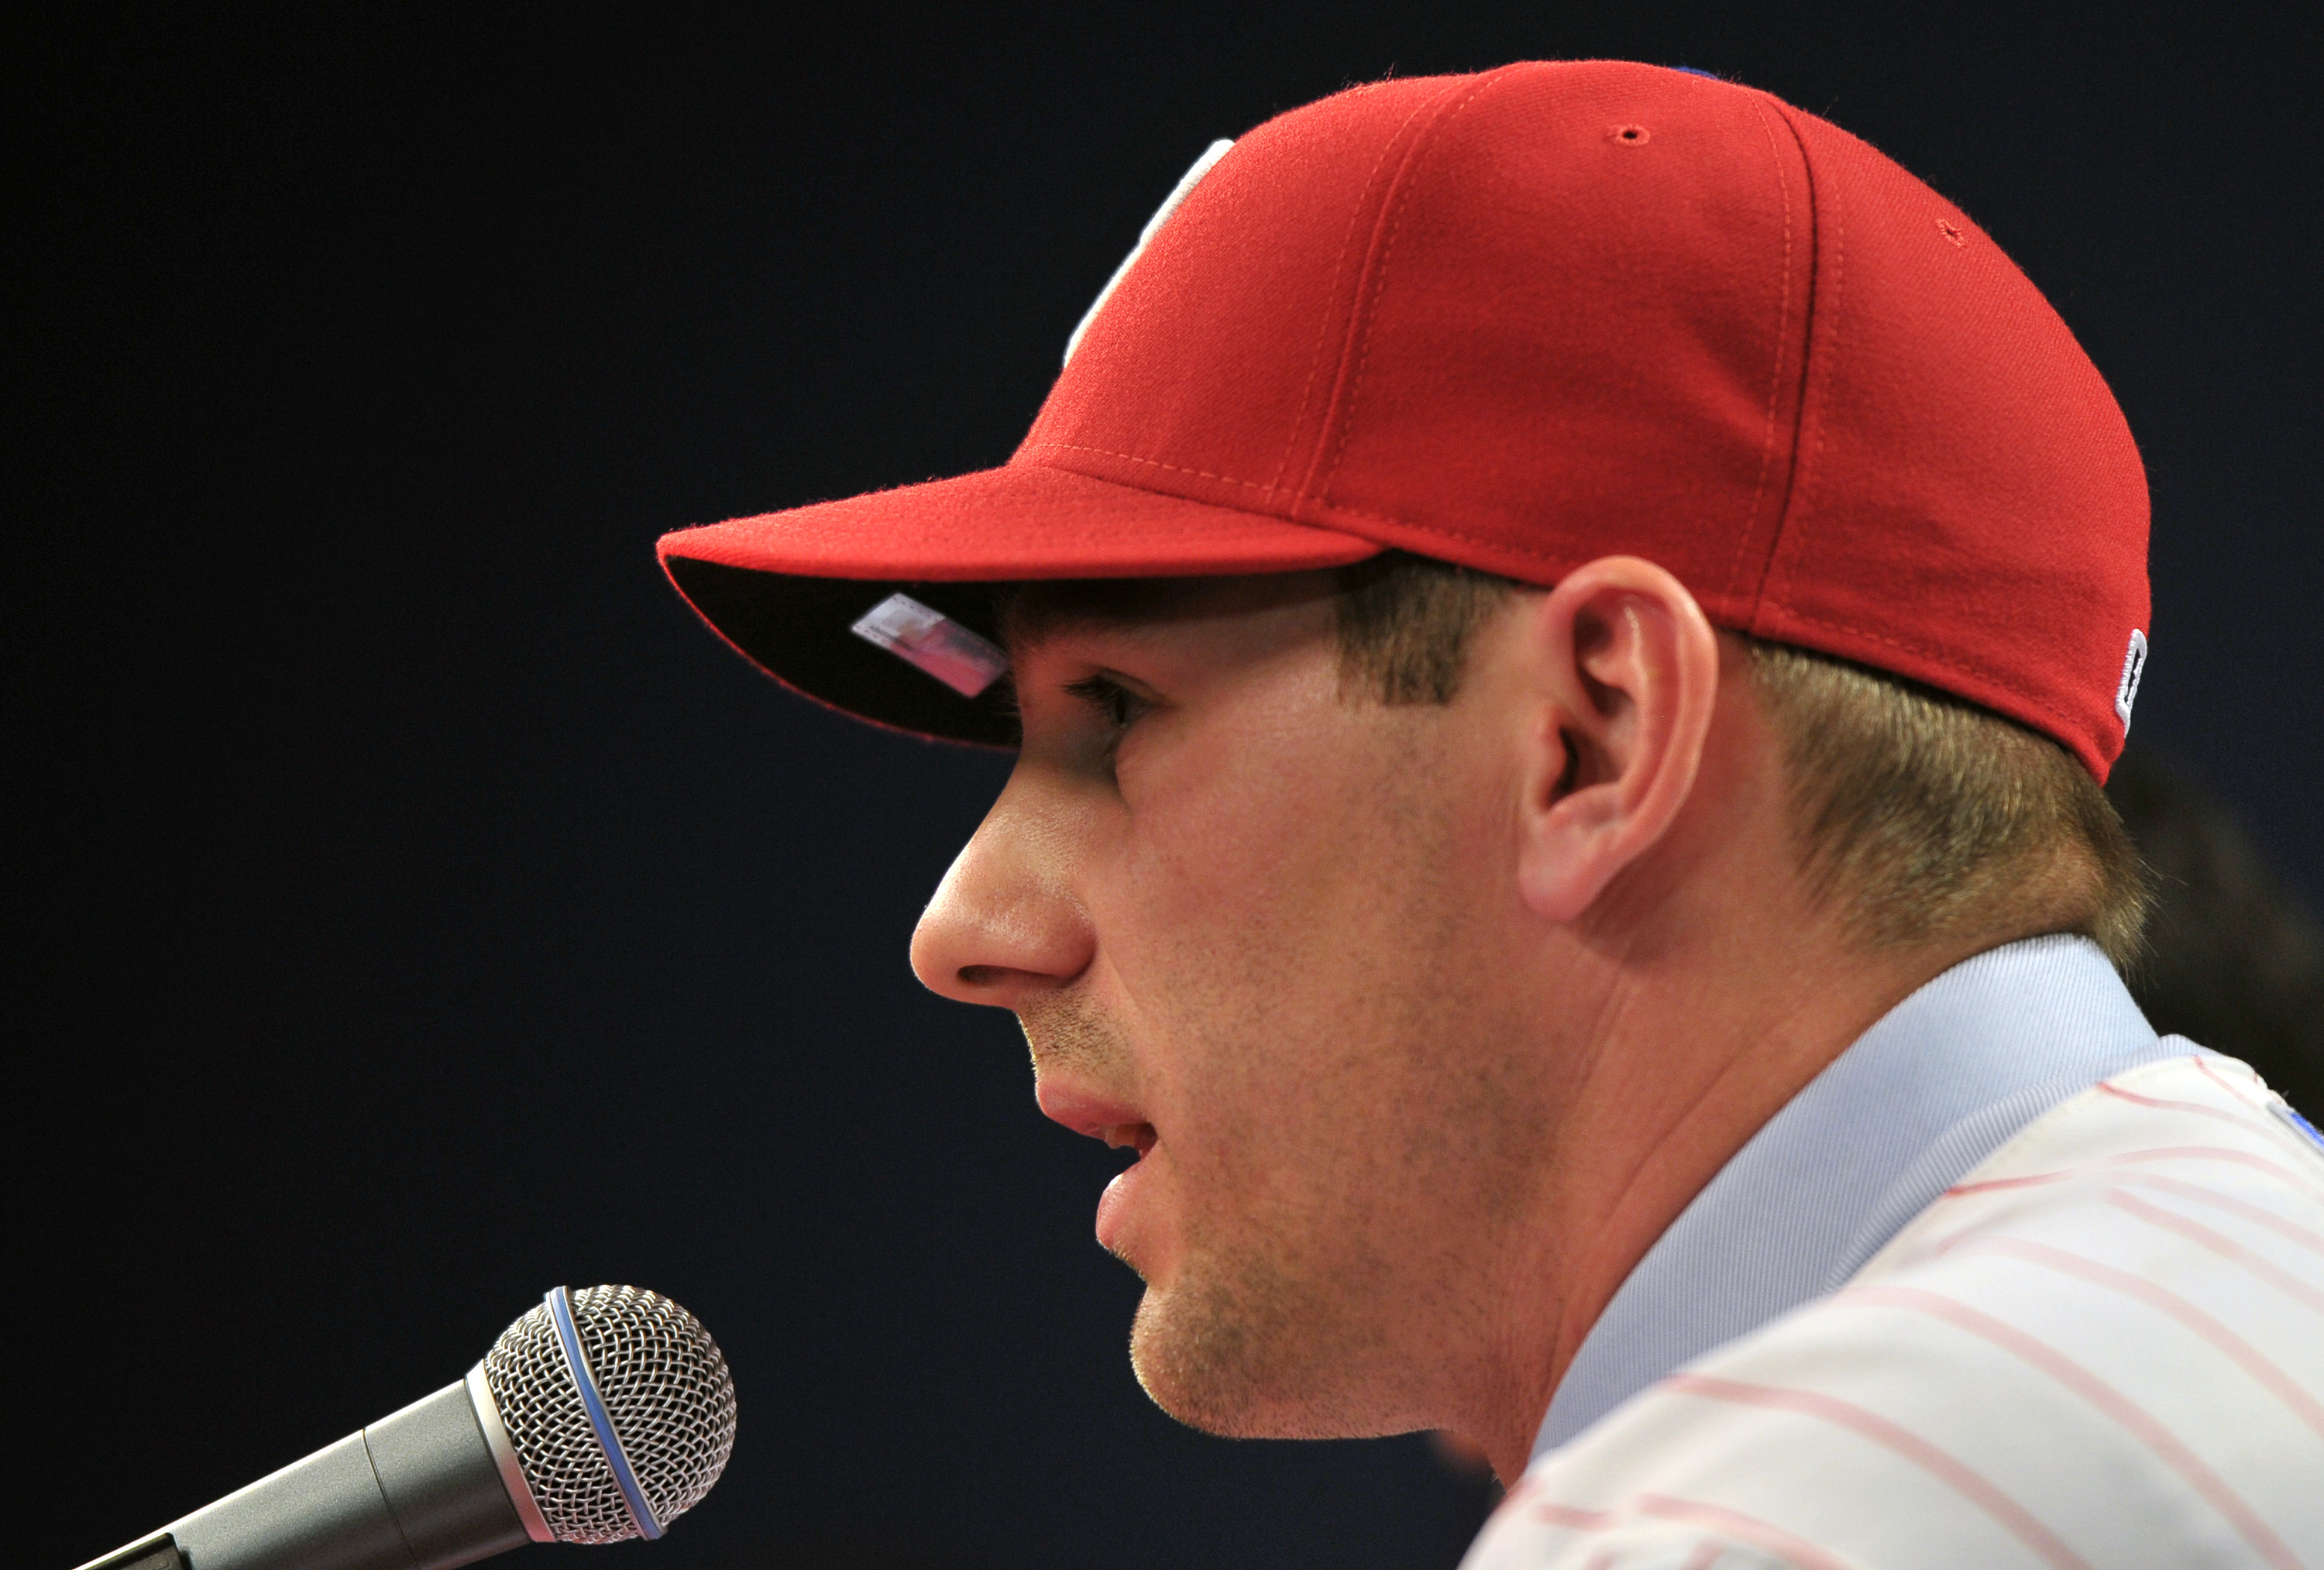 PHILADELPHIA - DECEMBER 15:  Pitcher Cliff Lee #33 of the Philadelphia Phillies is introduced to the media during a press conference at Citizens Bank Park on December 15, 2010 in Philadelphia, Pennsylvania. (Photo by Drew Hallowell/Getty Images)